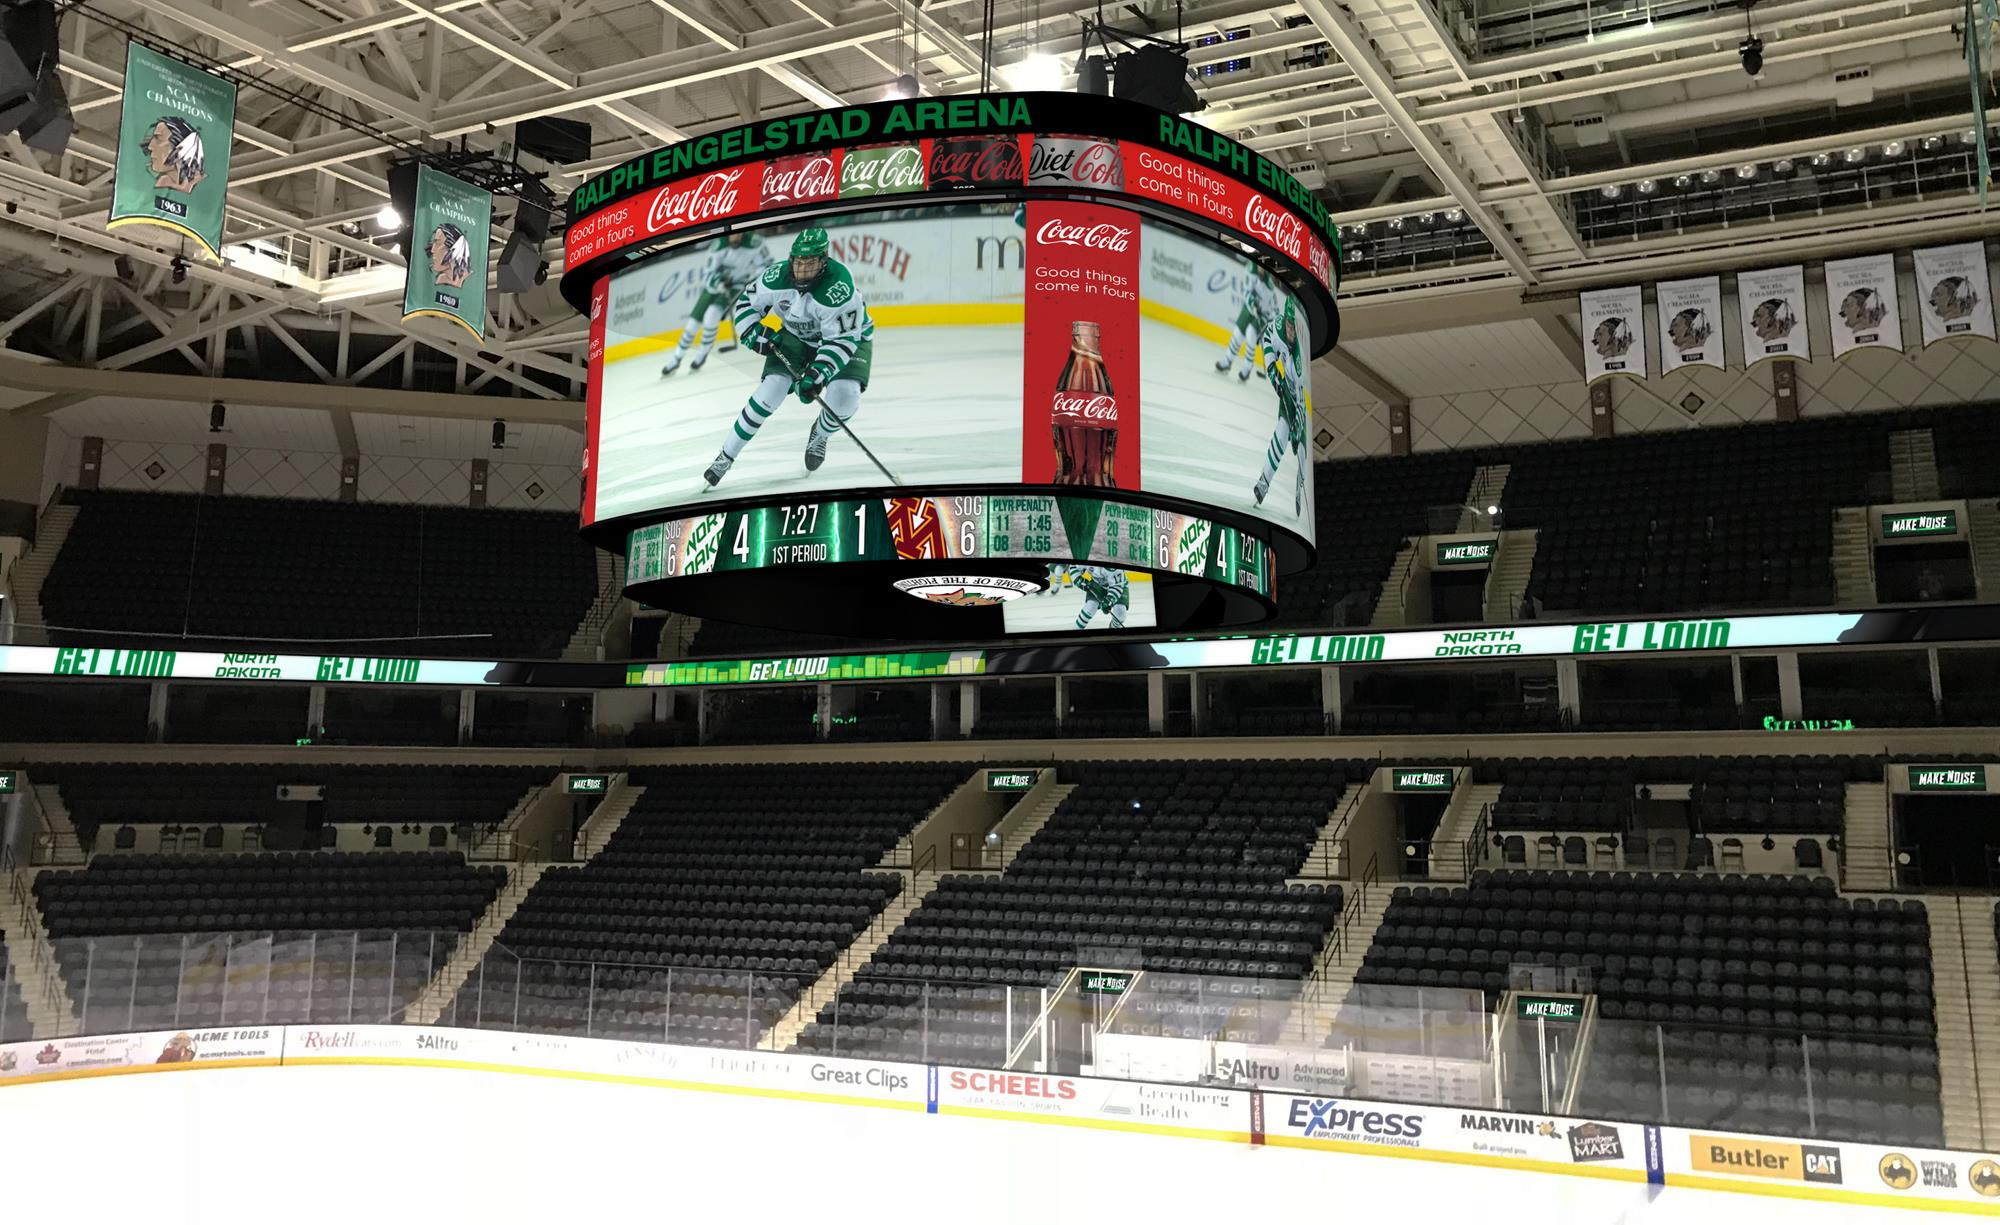 Ralph Engelstad Arena To Install Largest Center Hung Video Board In